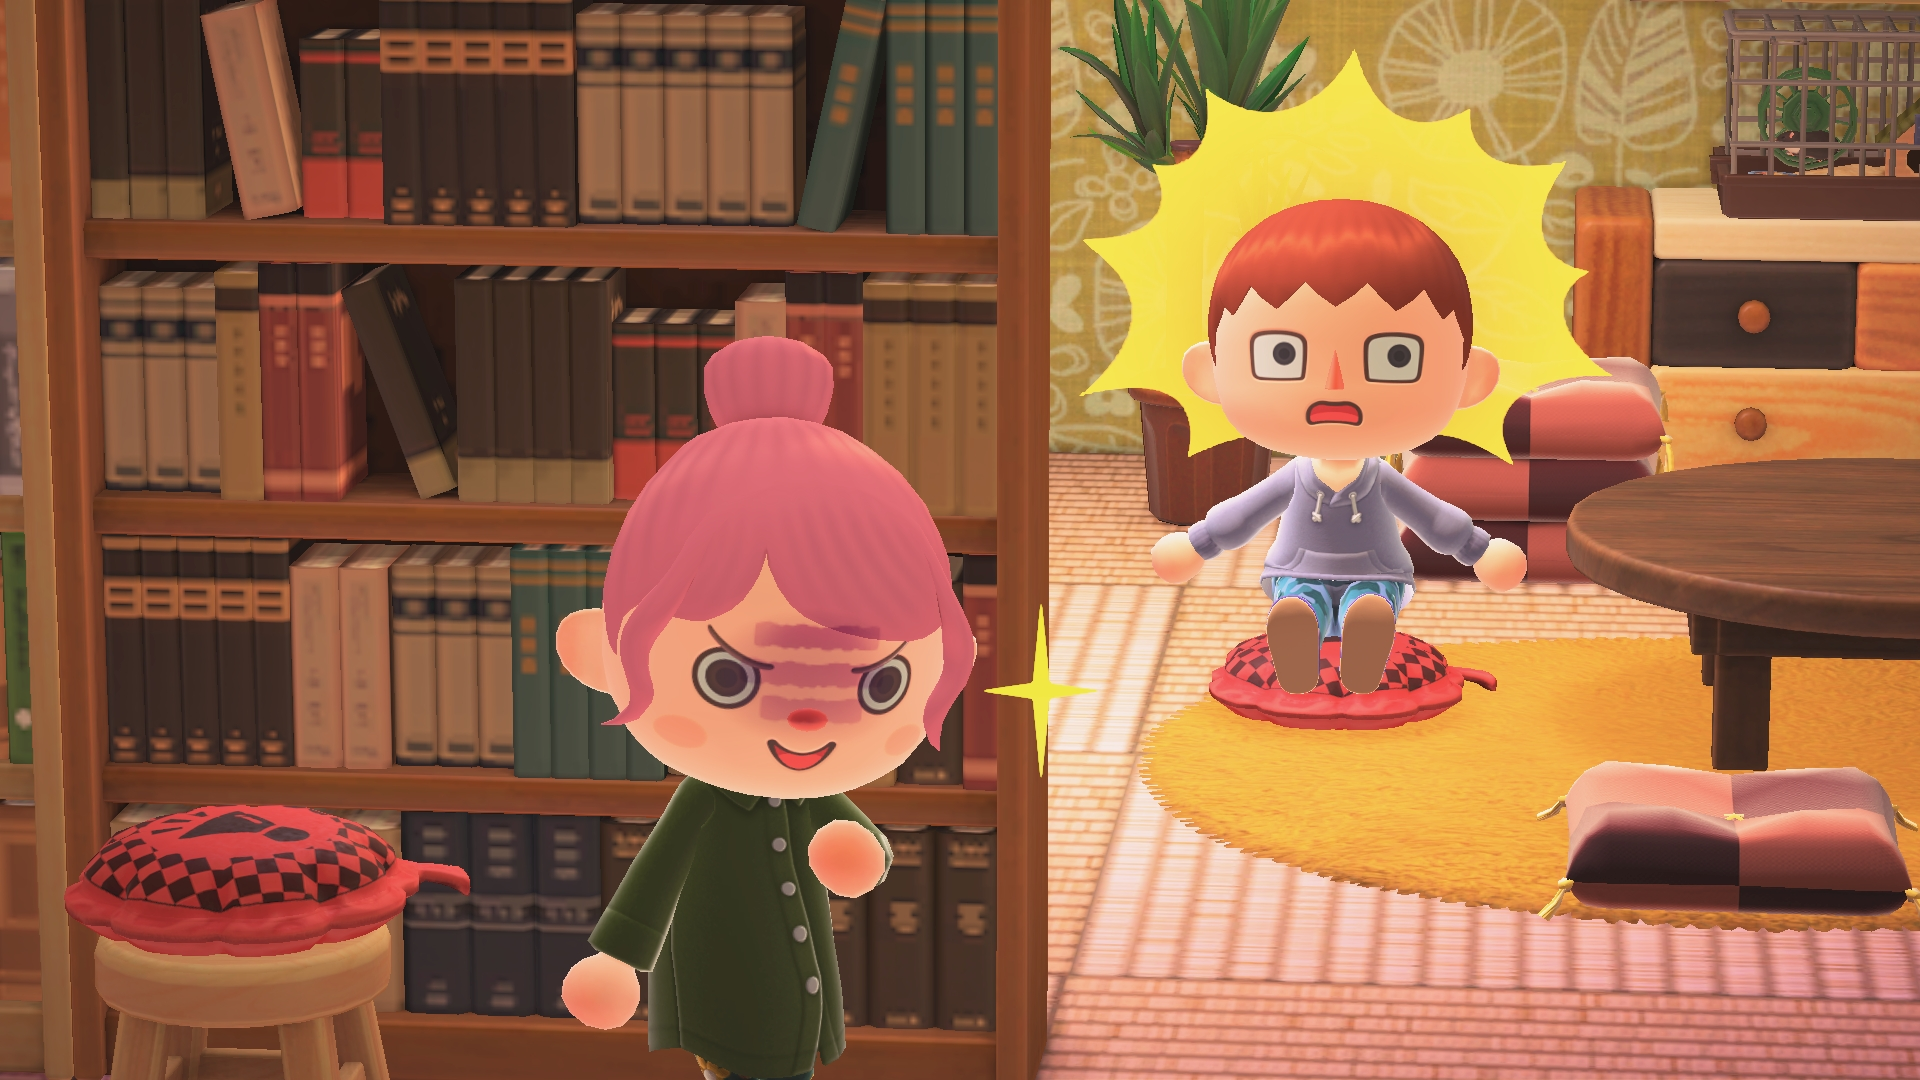 A villager smirks as another villager sits on a whoopee cushion in Animal Crossing: New Horizons.